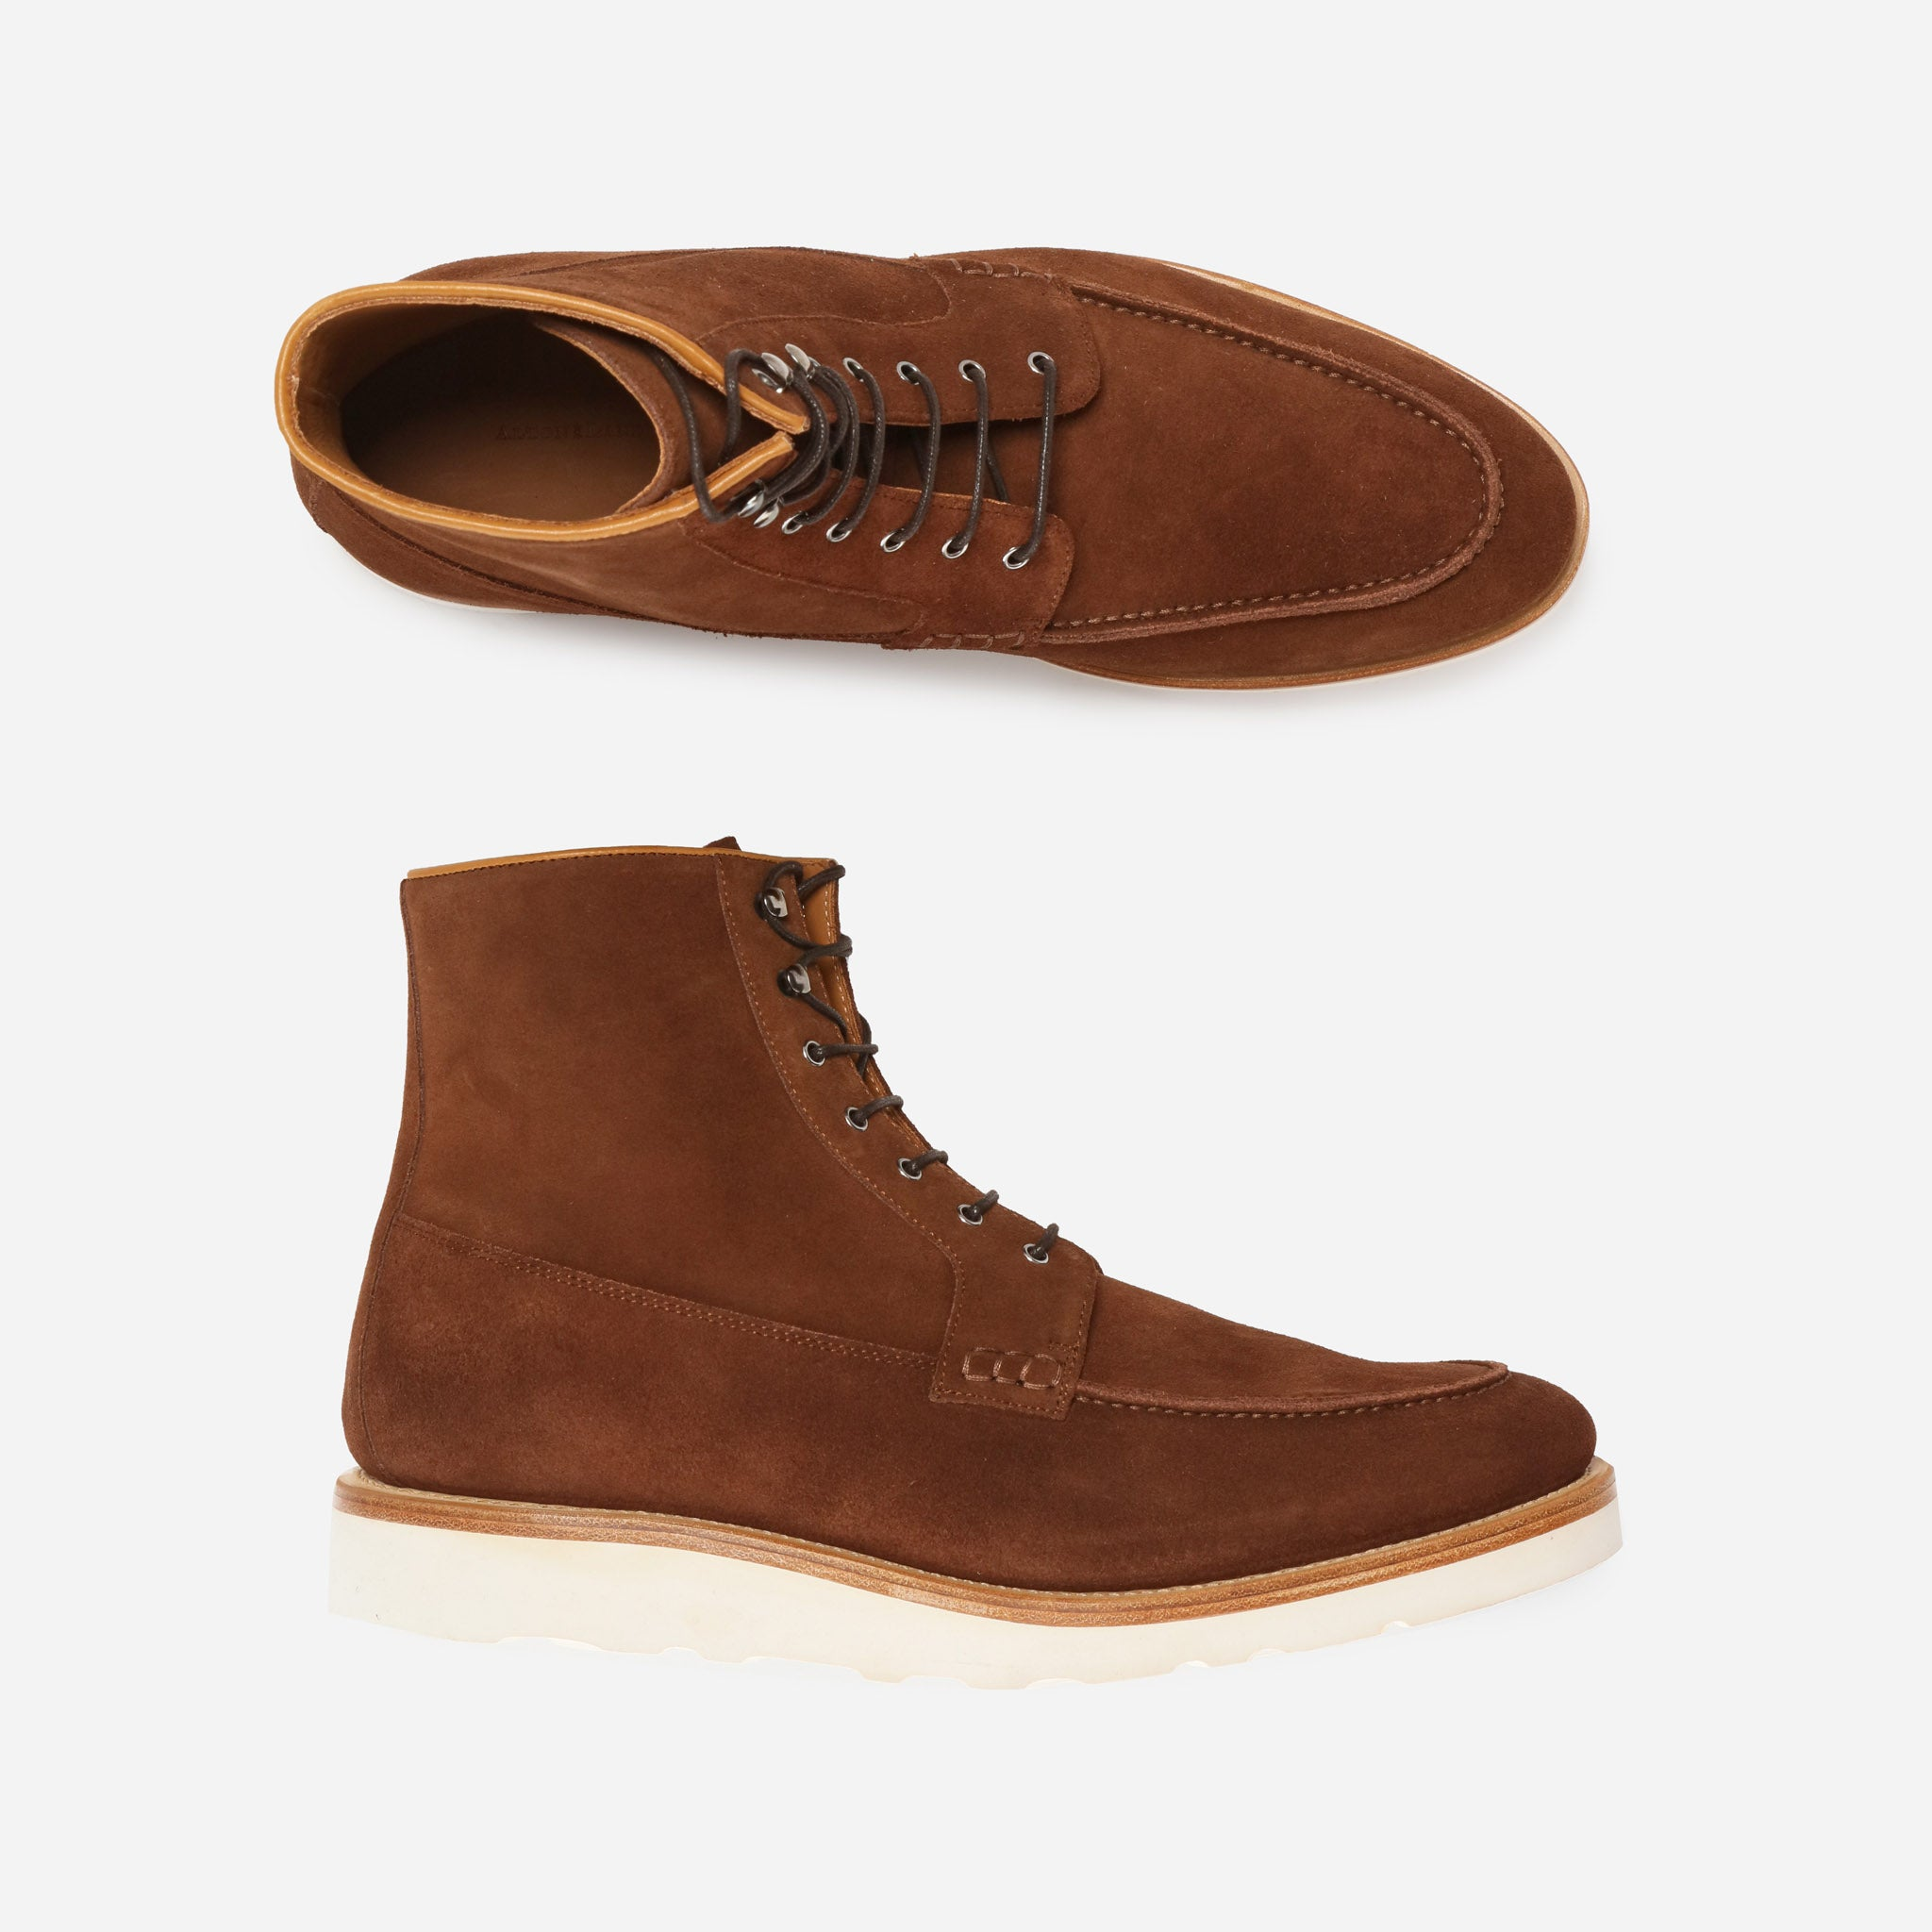 Powhatan in Brown Suede